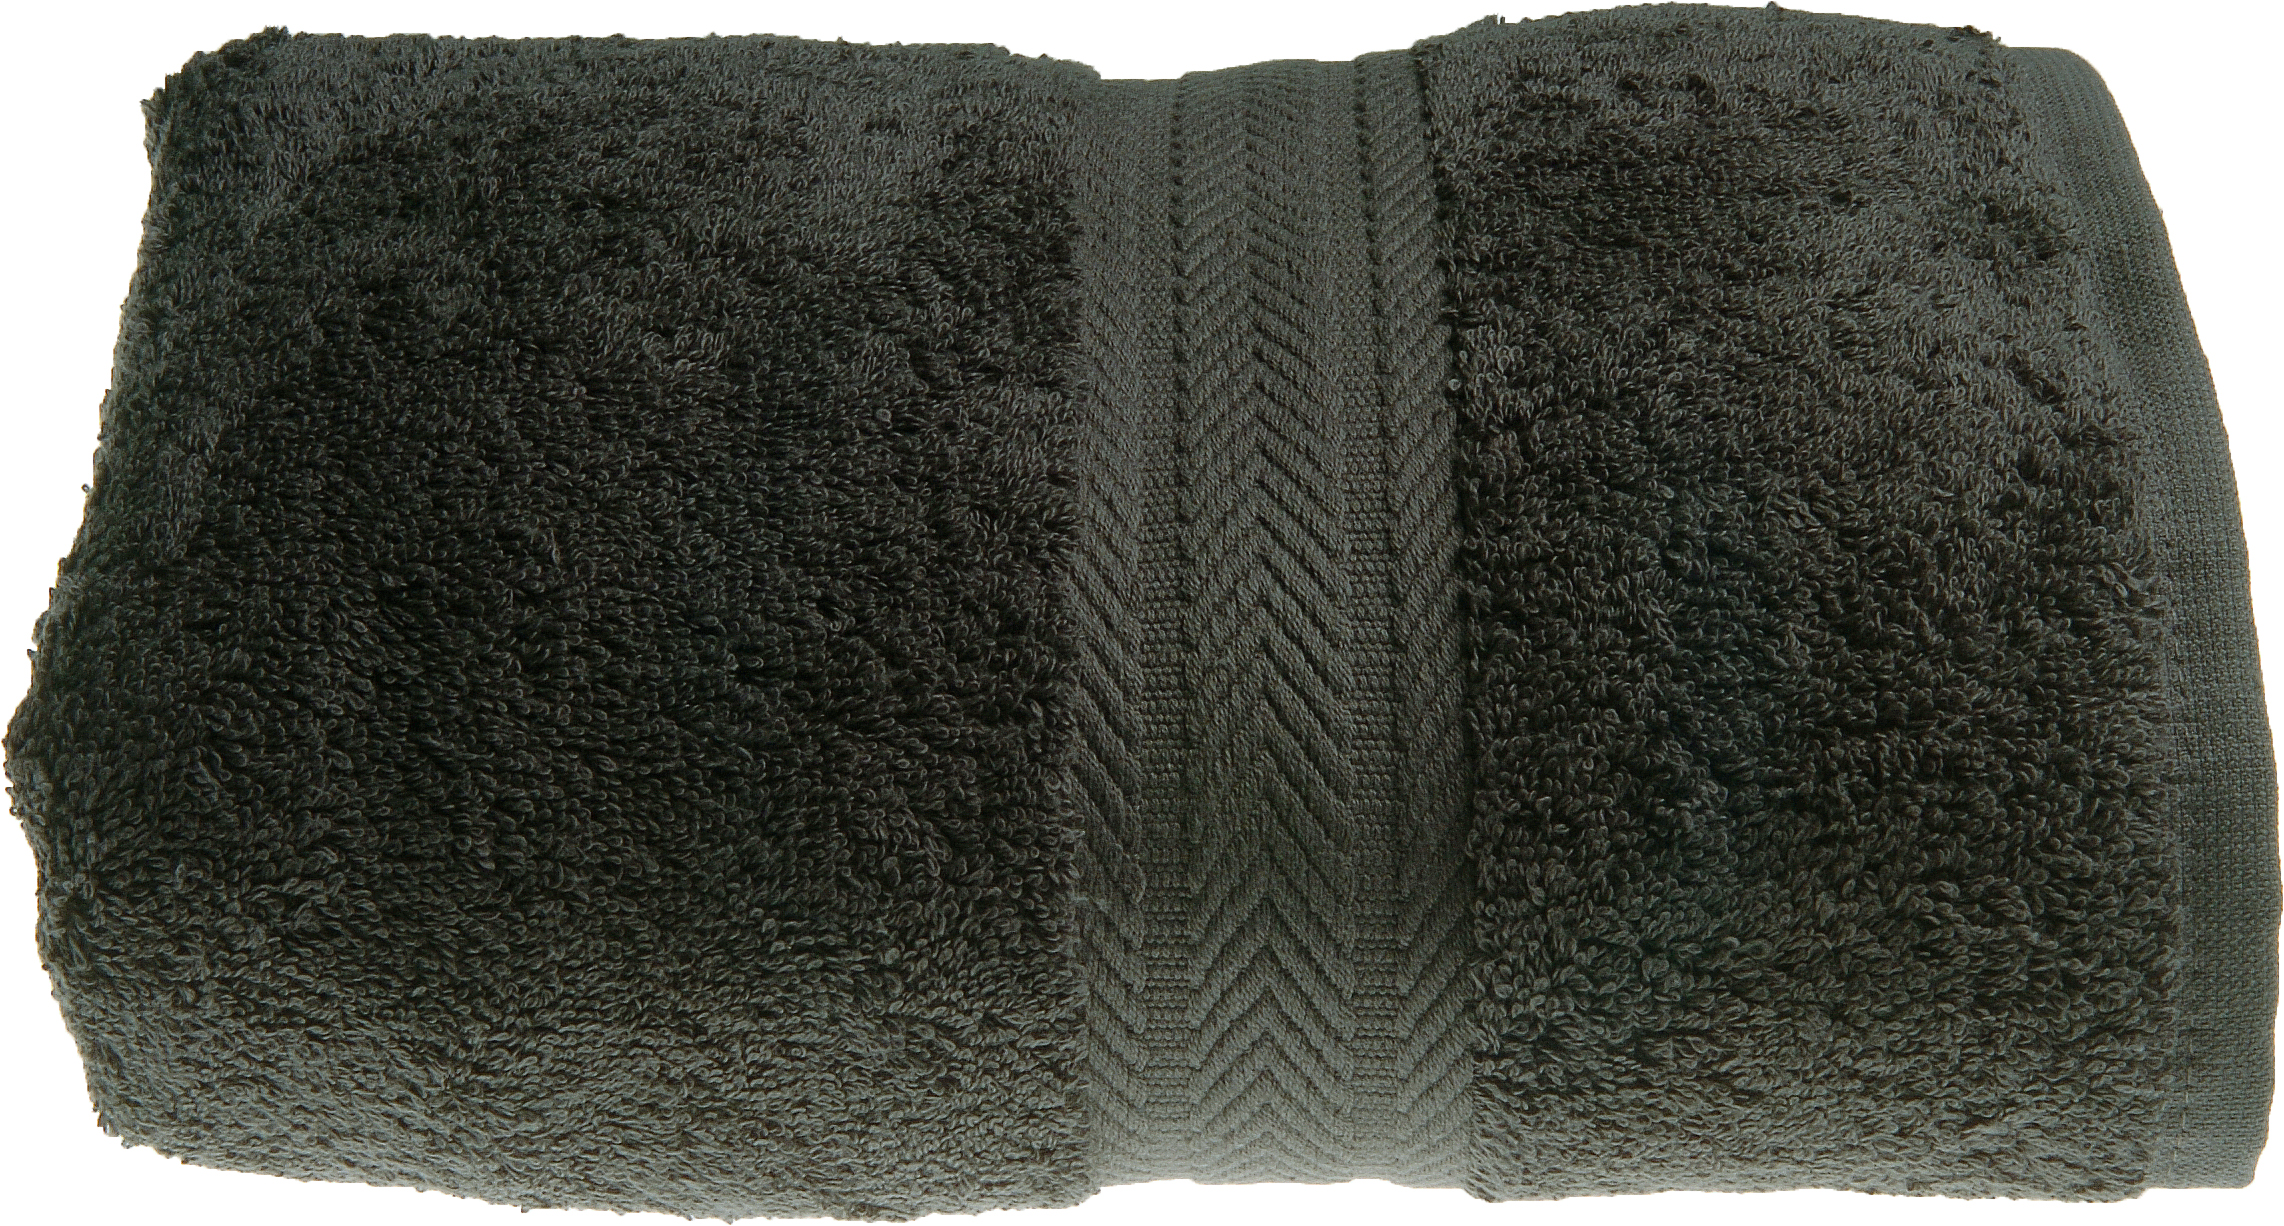 Serviette de toilette 50 x 100 cm en Coton couleur Anthracite (Anthracite)